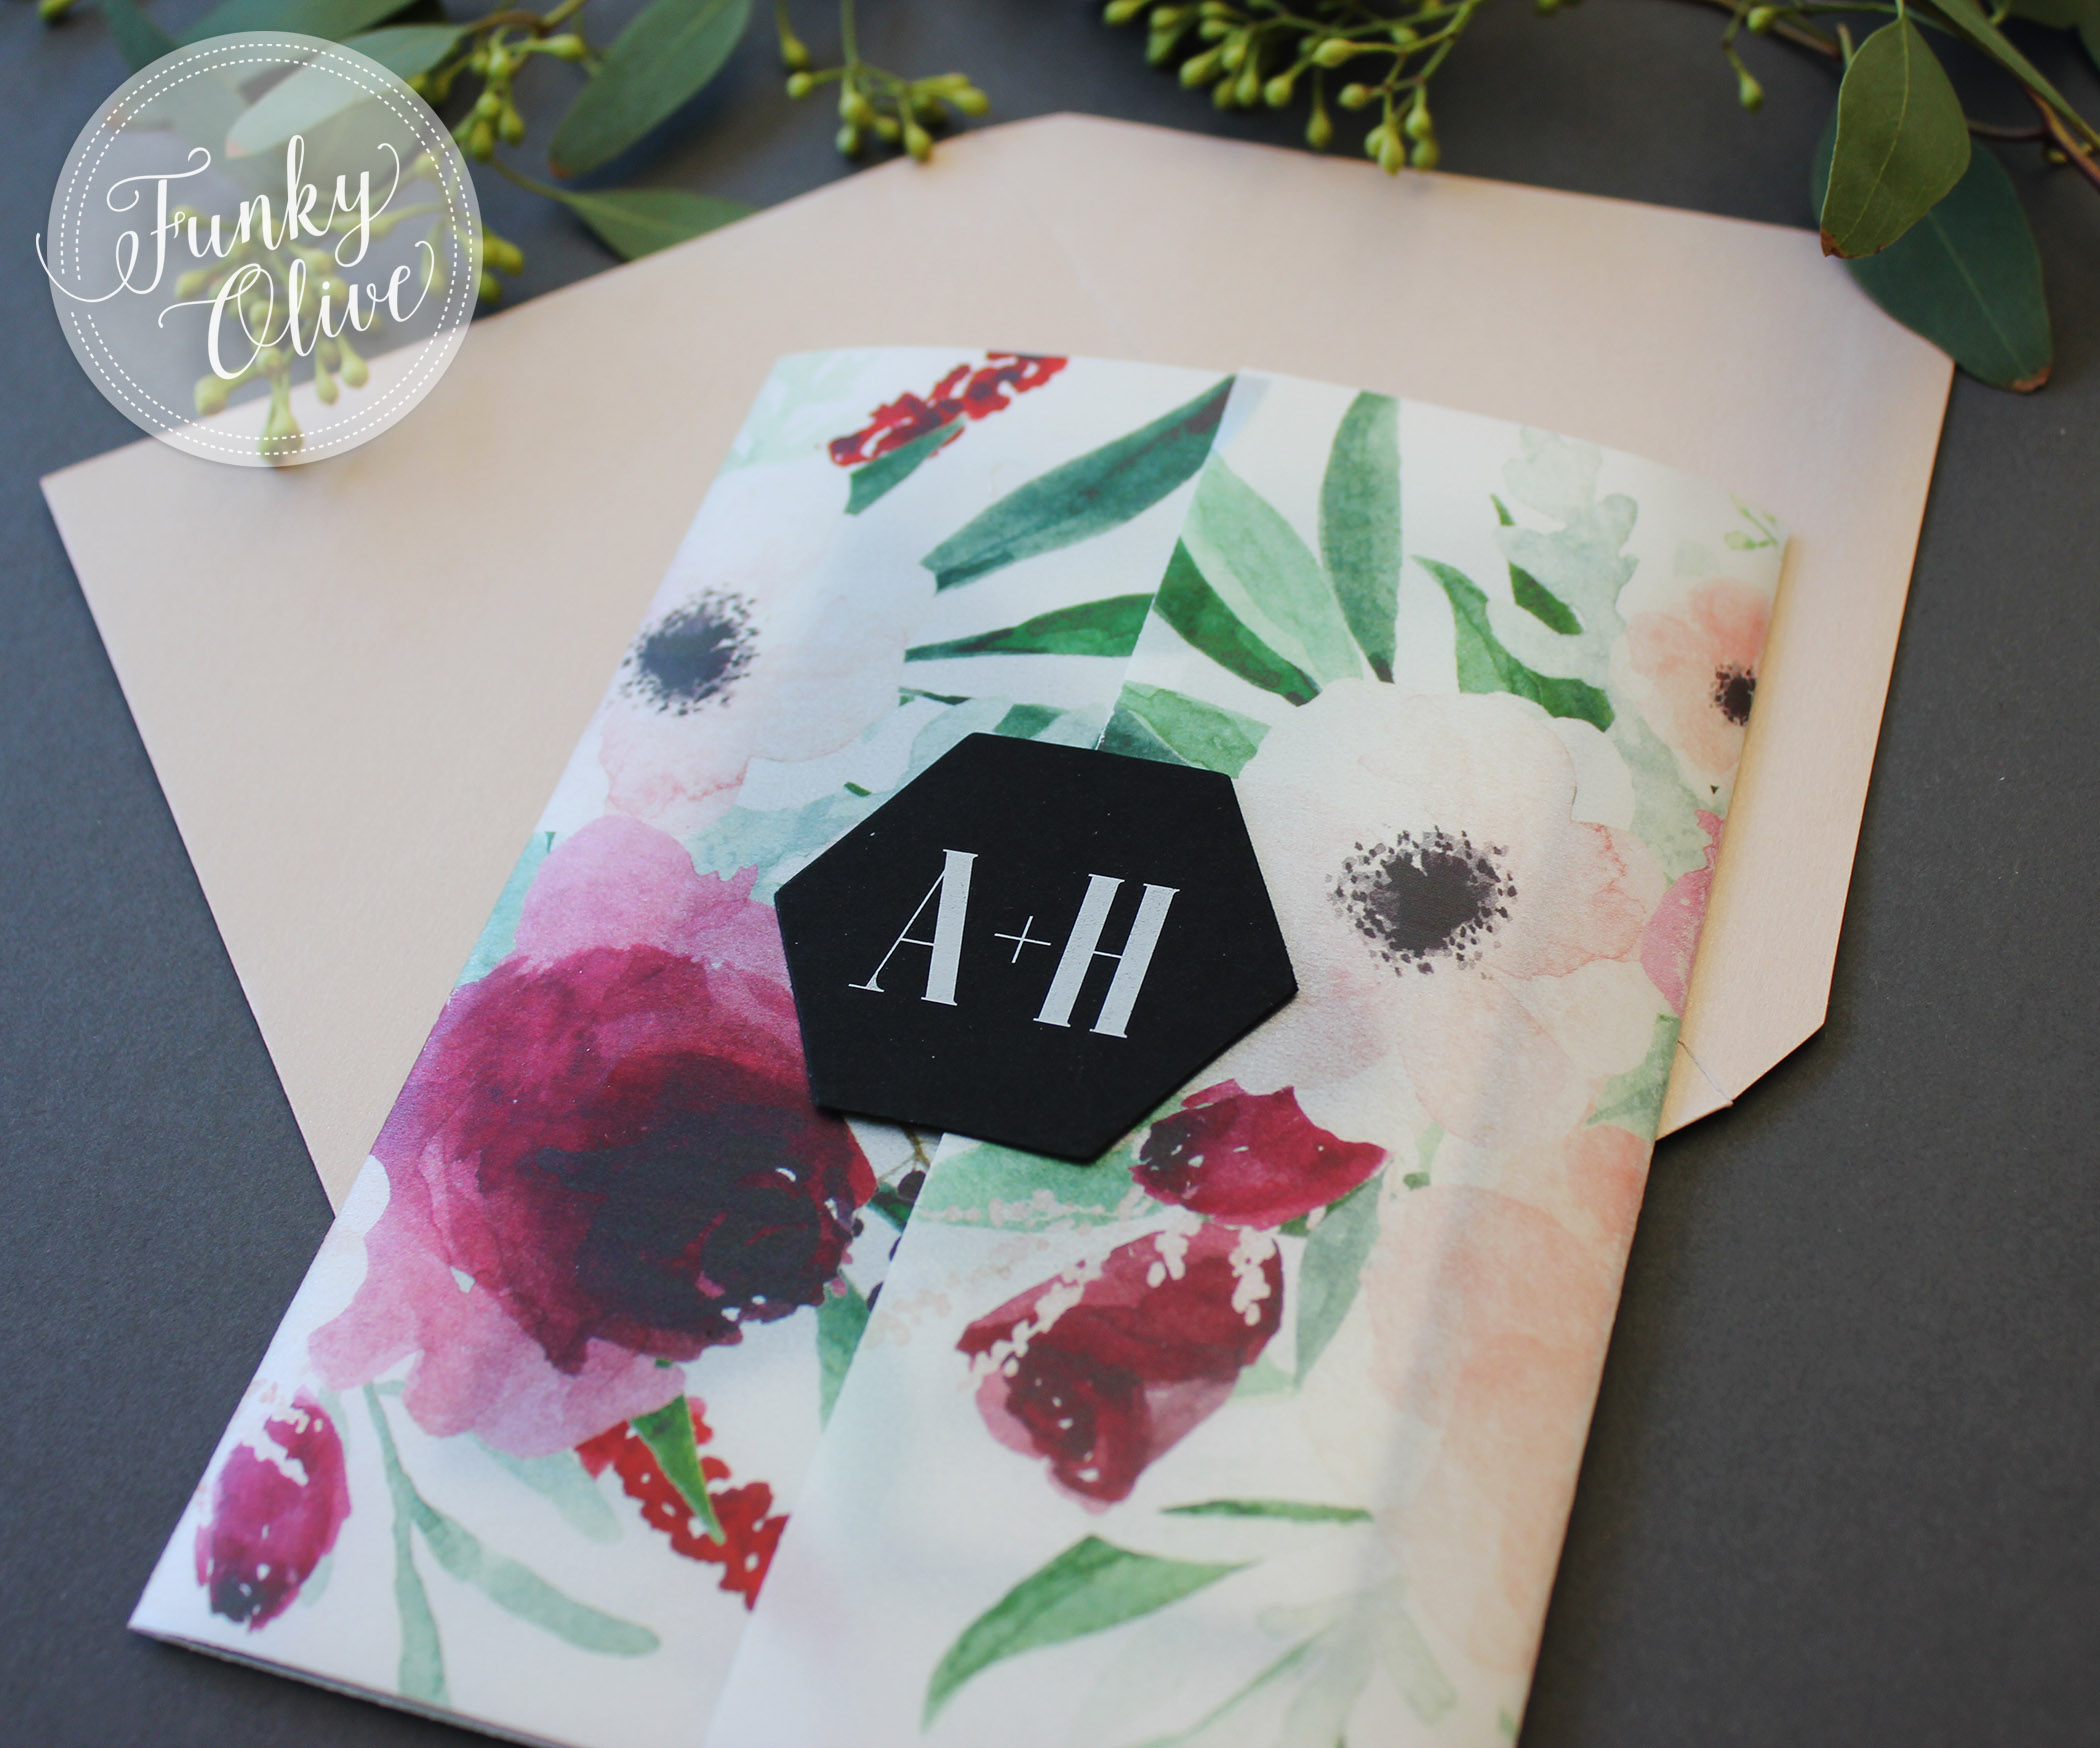 Now I know that this isn't a belly band (it's a simple cardstock seal), but how fun with this cute little hexagon shape be as a belly band topper!!! - you know you want it! And it's so chic in matte black with white ink printing.